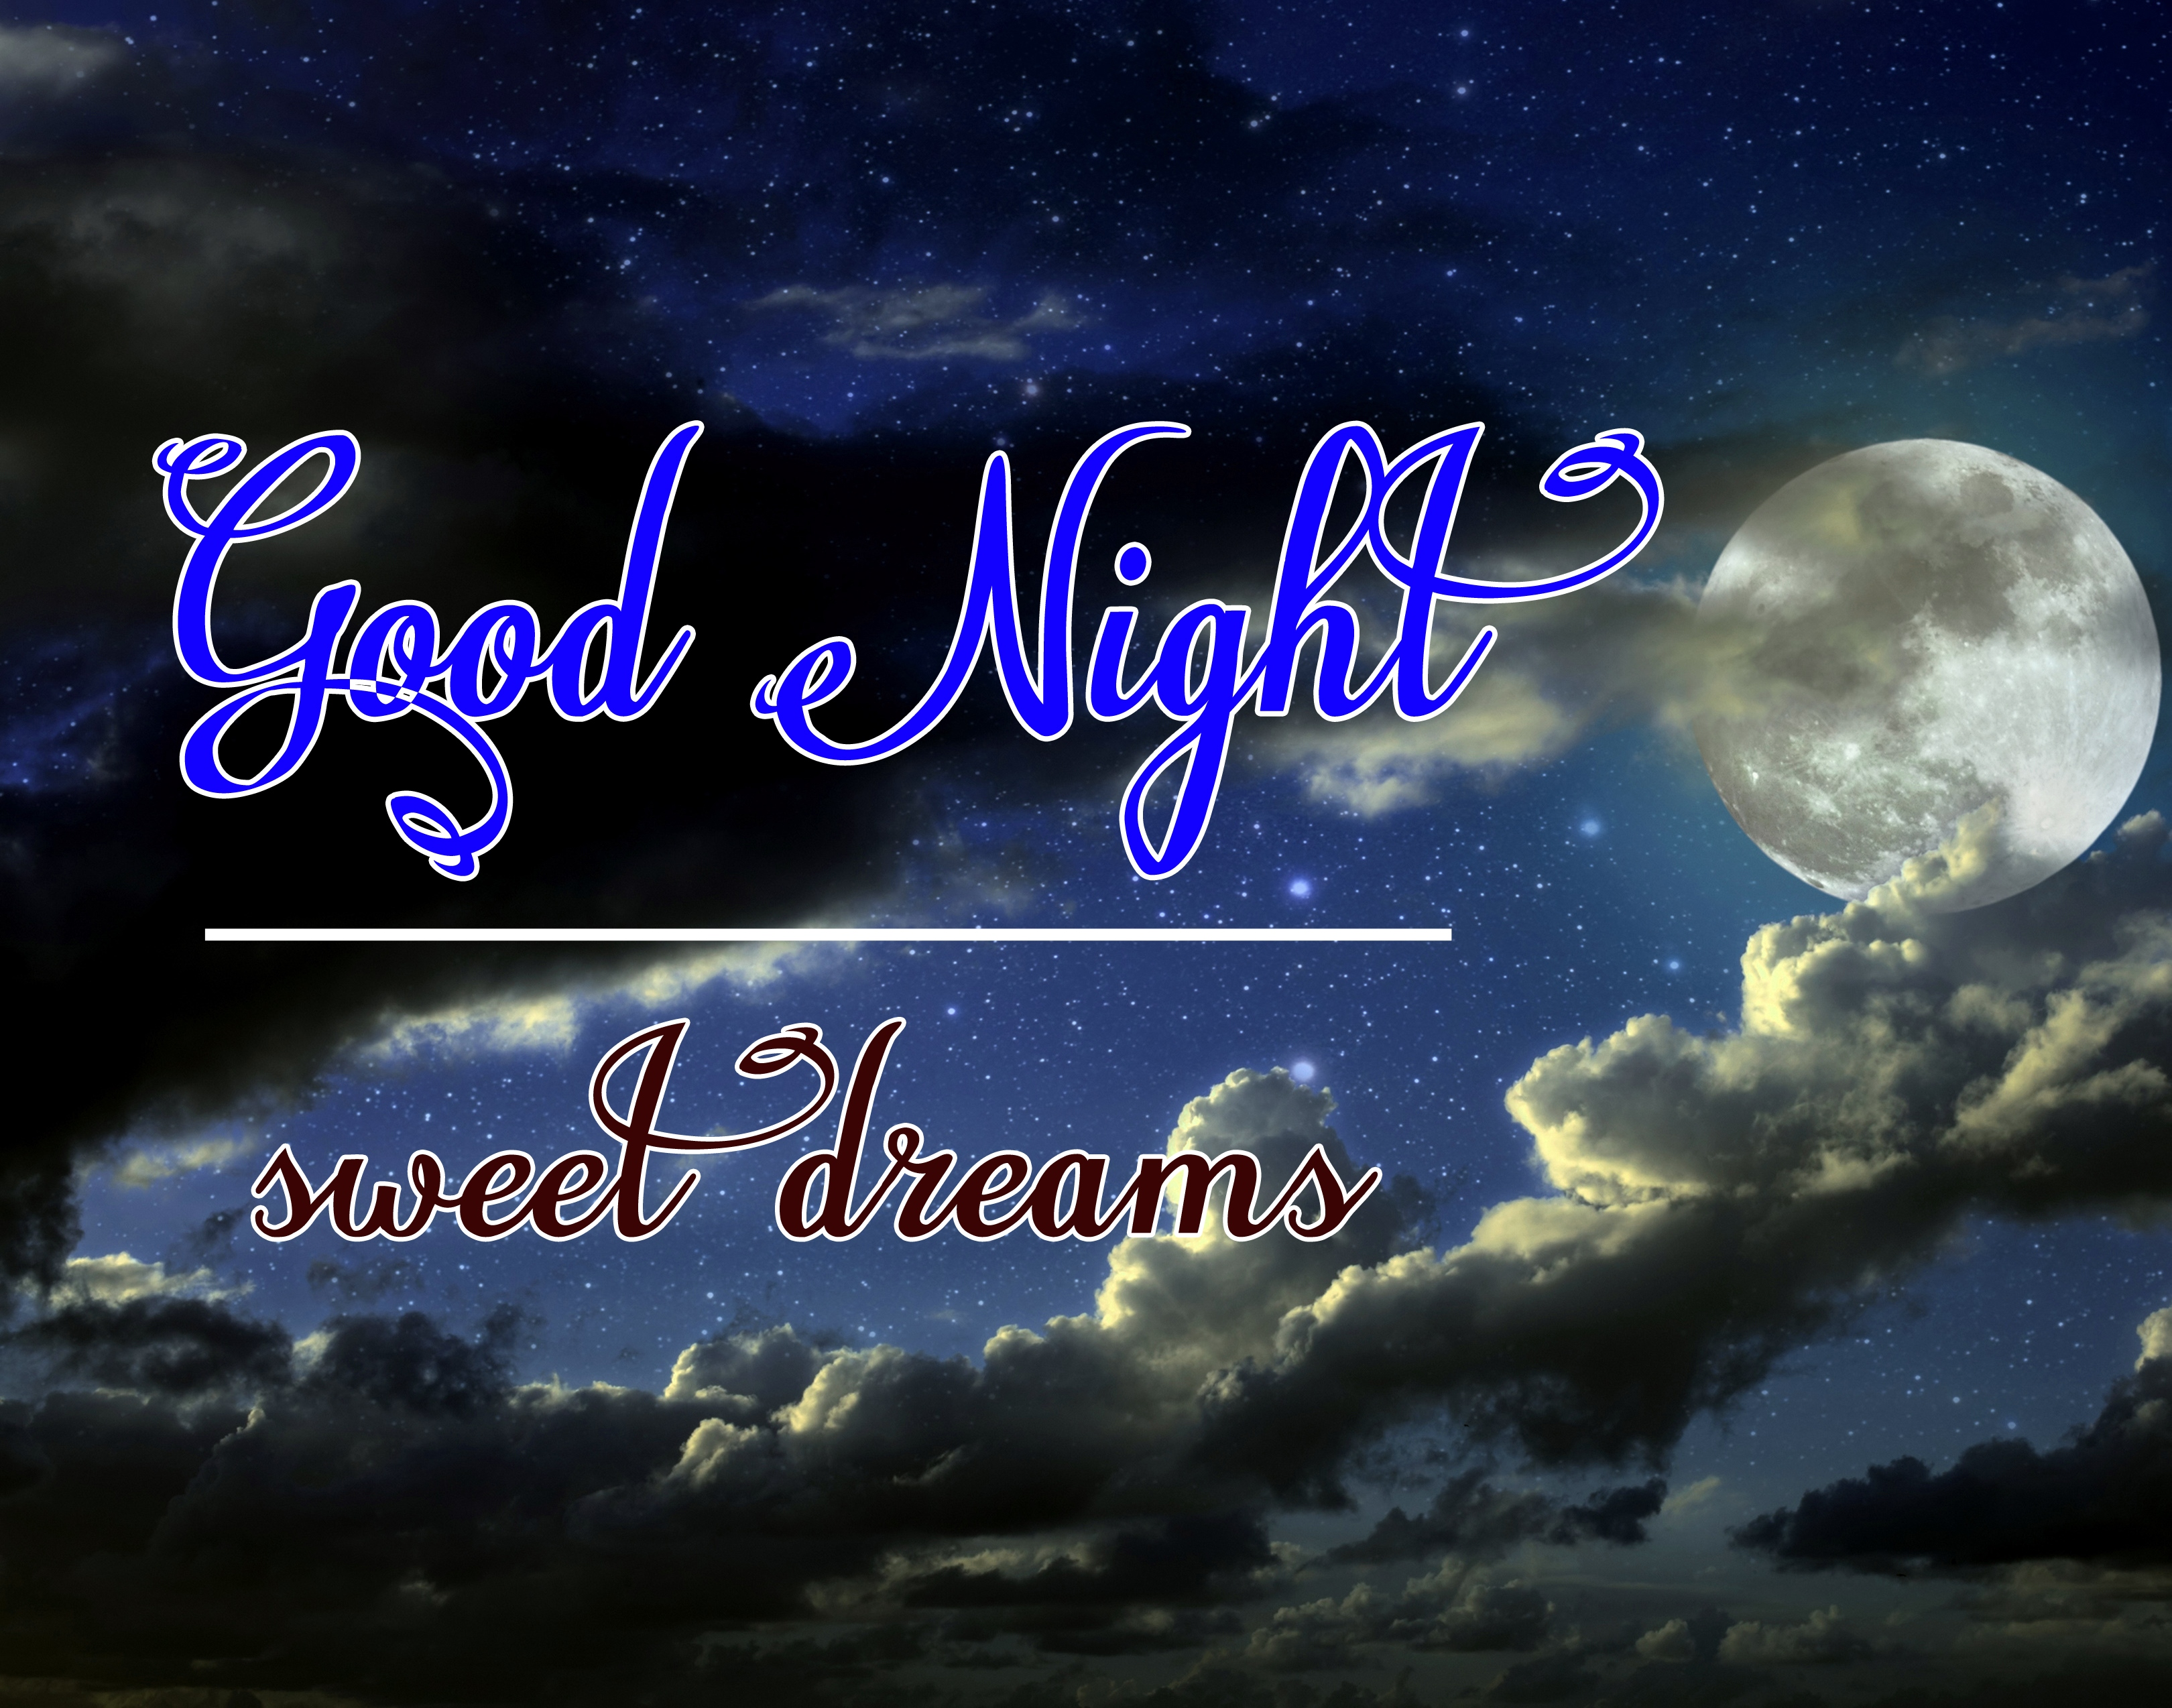 Good night wallpaper hd 39 1